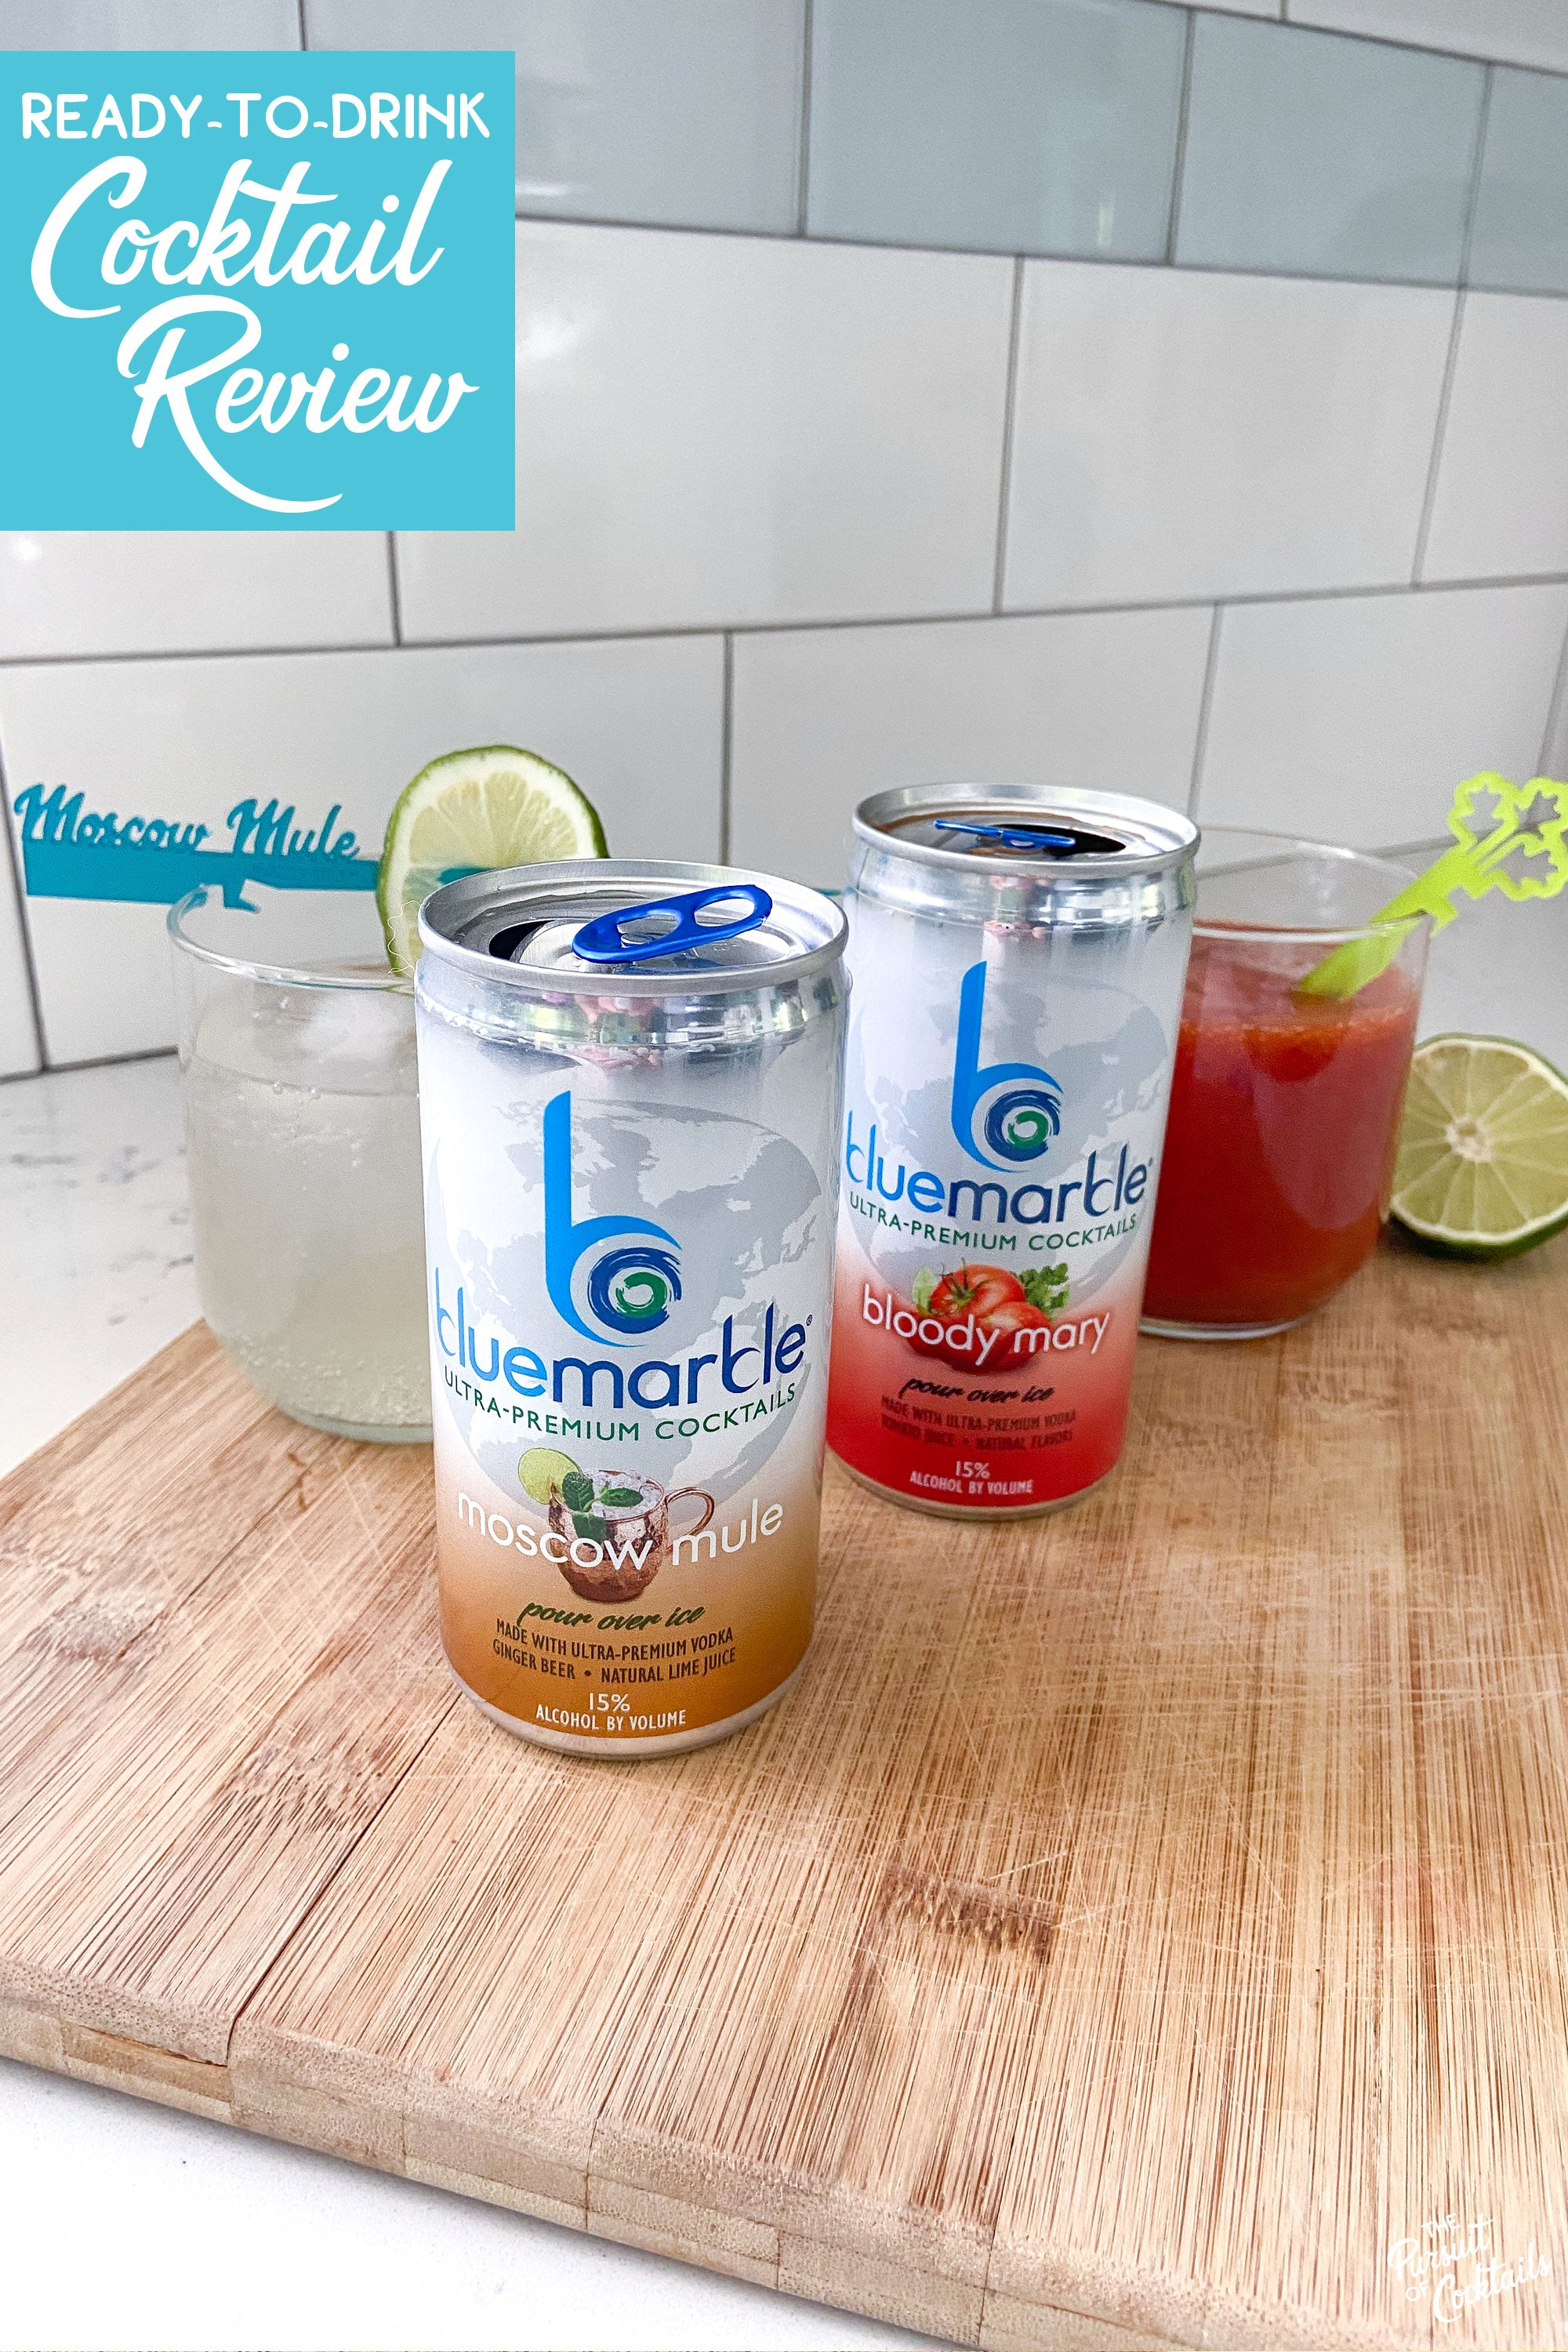 Blue Marble canned cocktail review of their Moscow Mule and Bloody Mary